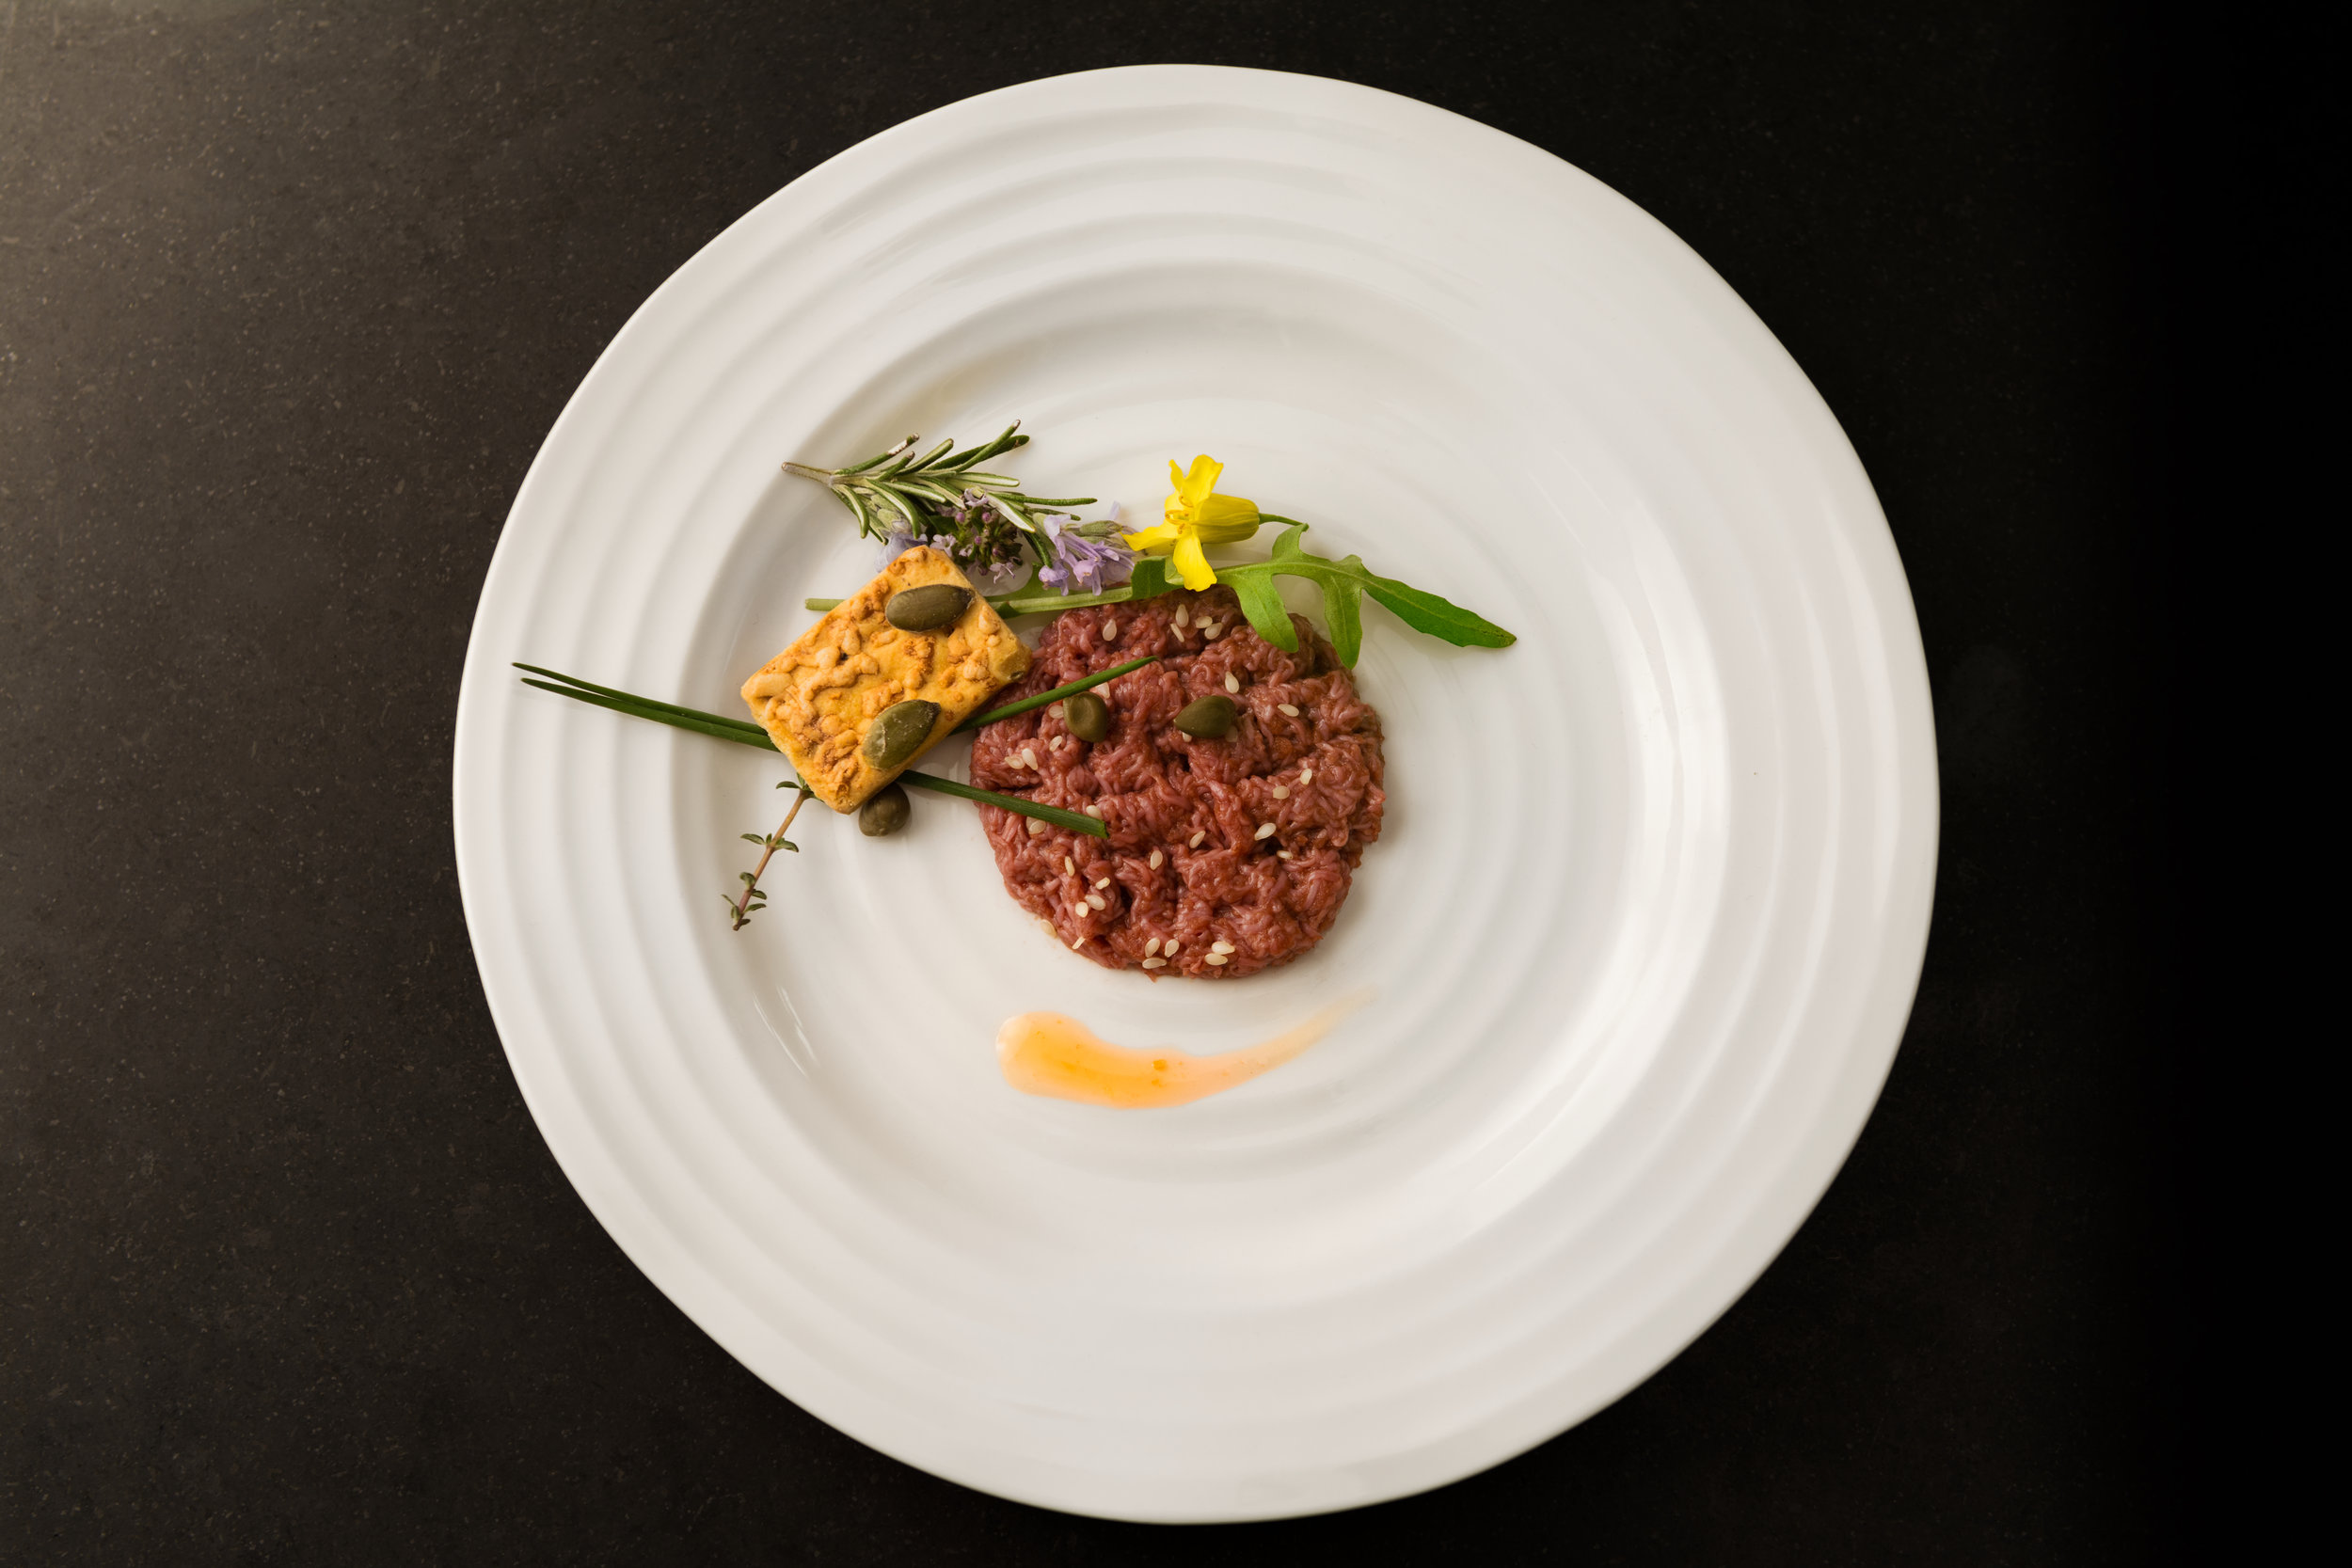 Mosa Meat's steak tartare on white plate with garnishes